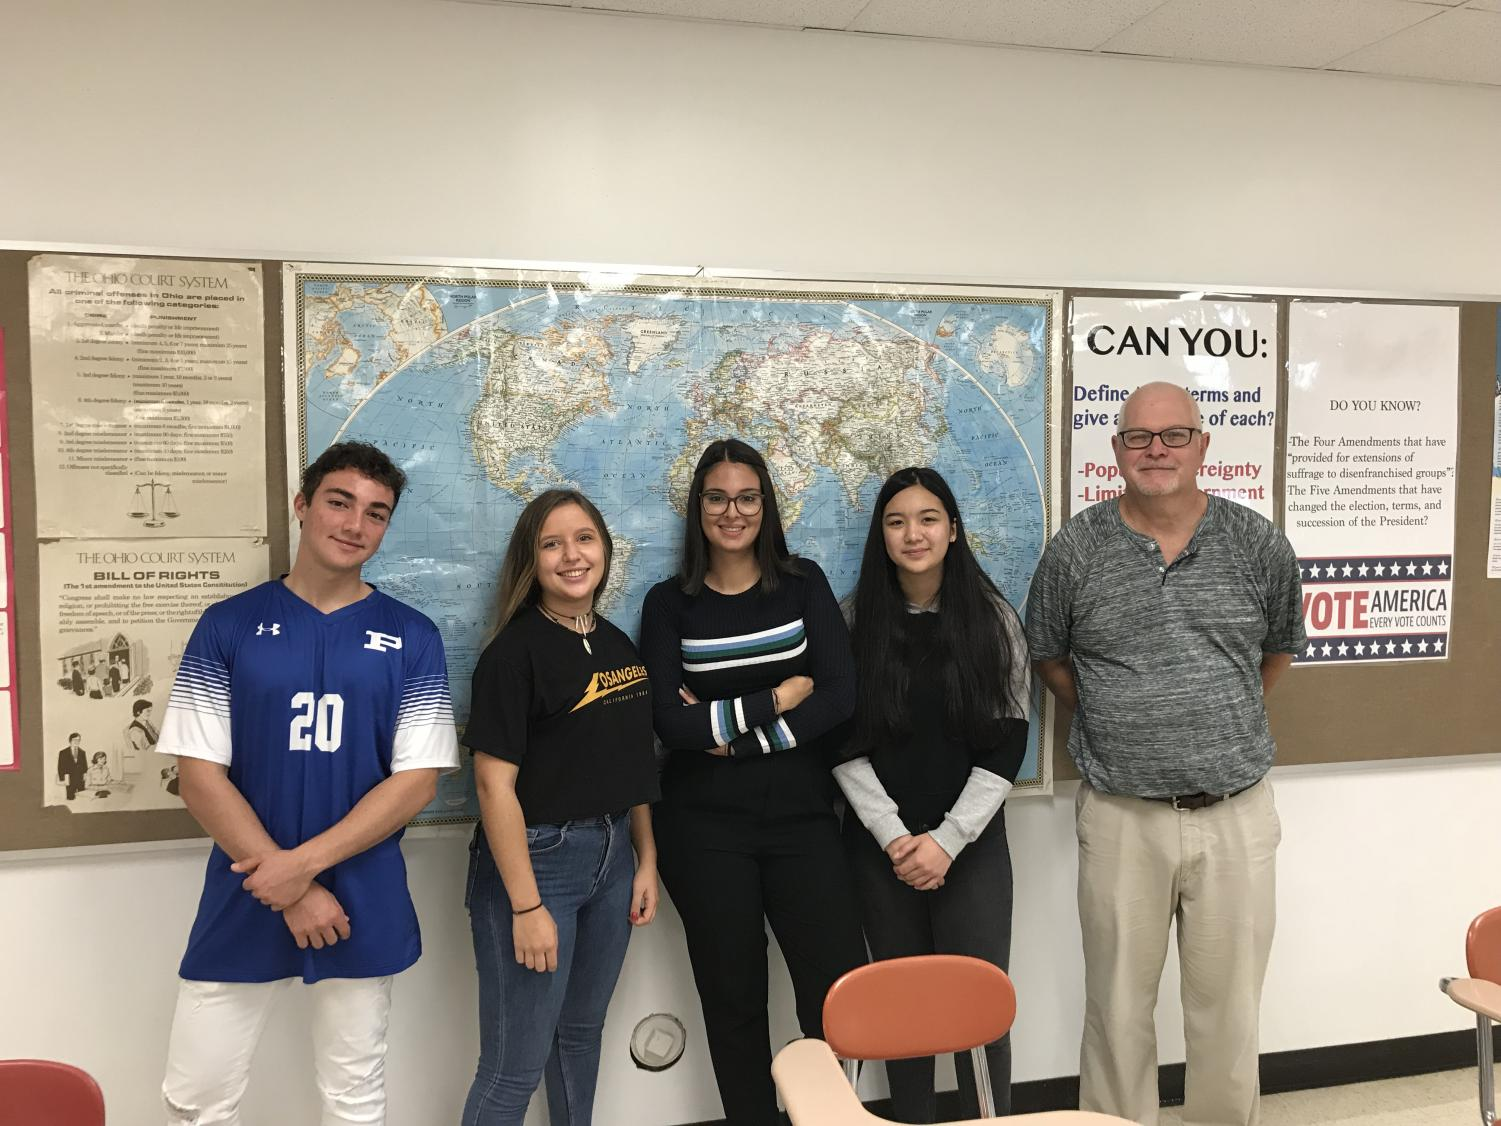 Left to Right: Samuele Franceschetti, Isabel Tabares, Alice Corrias,  Ayazhan Fazylova, and Mr. Rowe at a get together for the foreign exchange students.